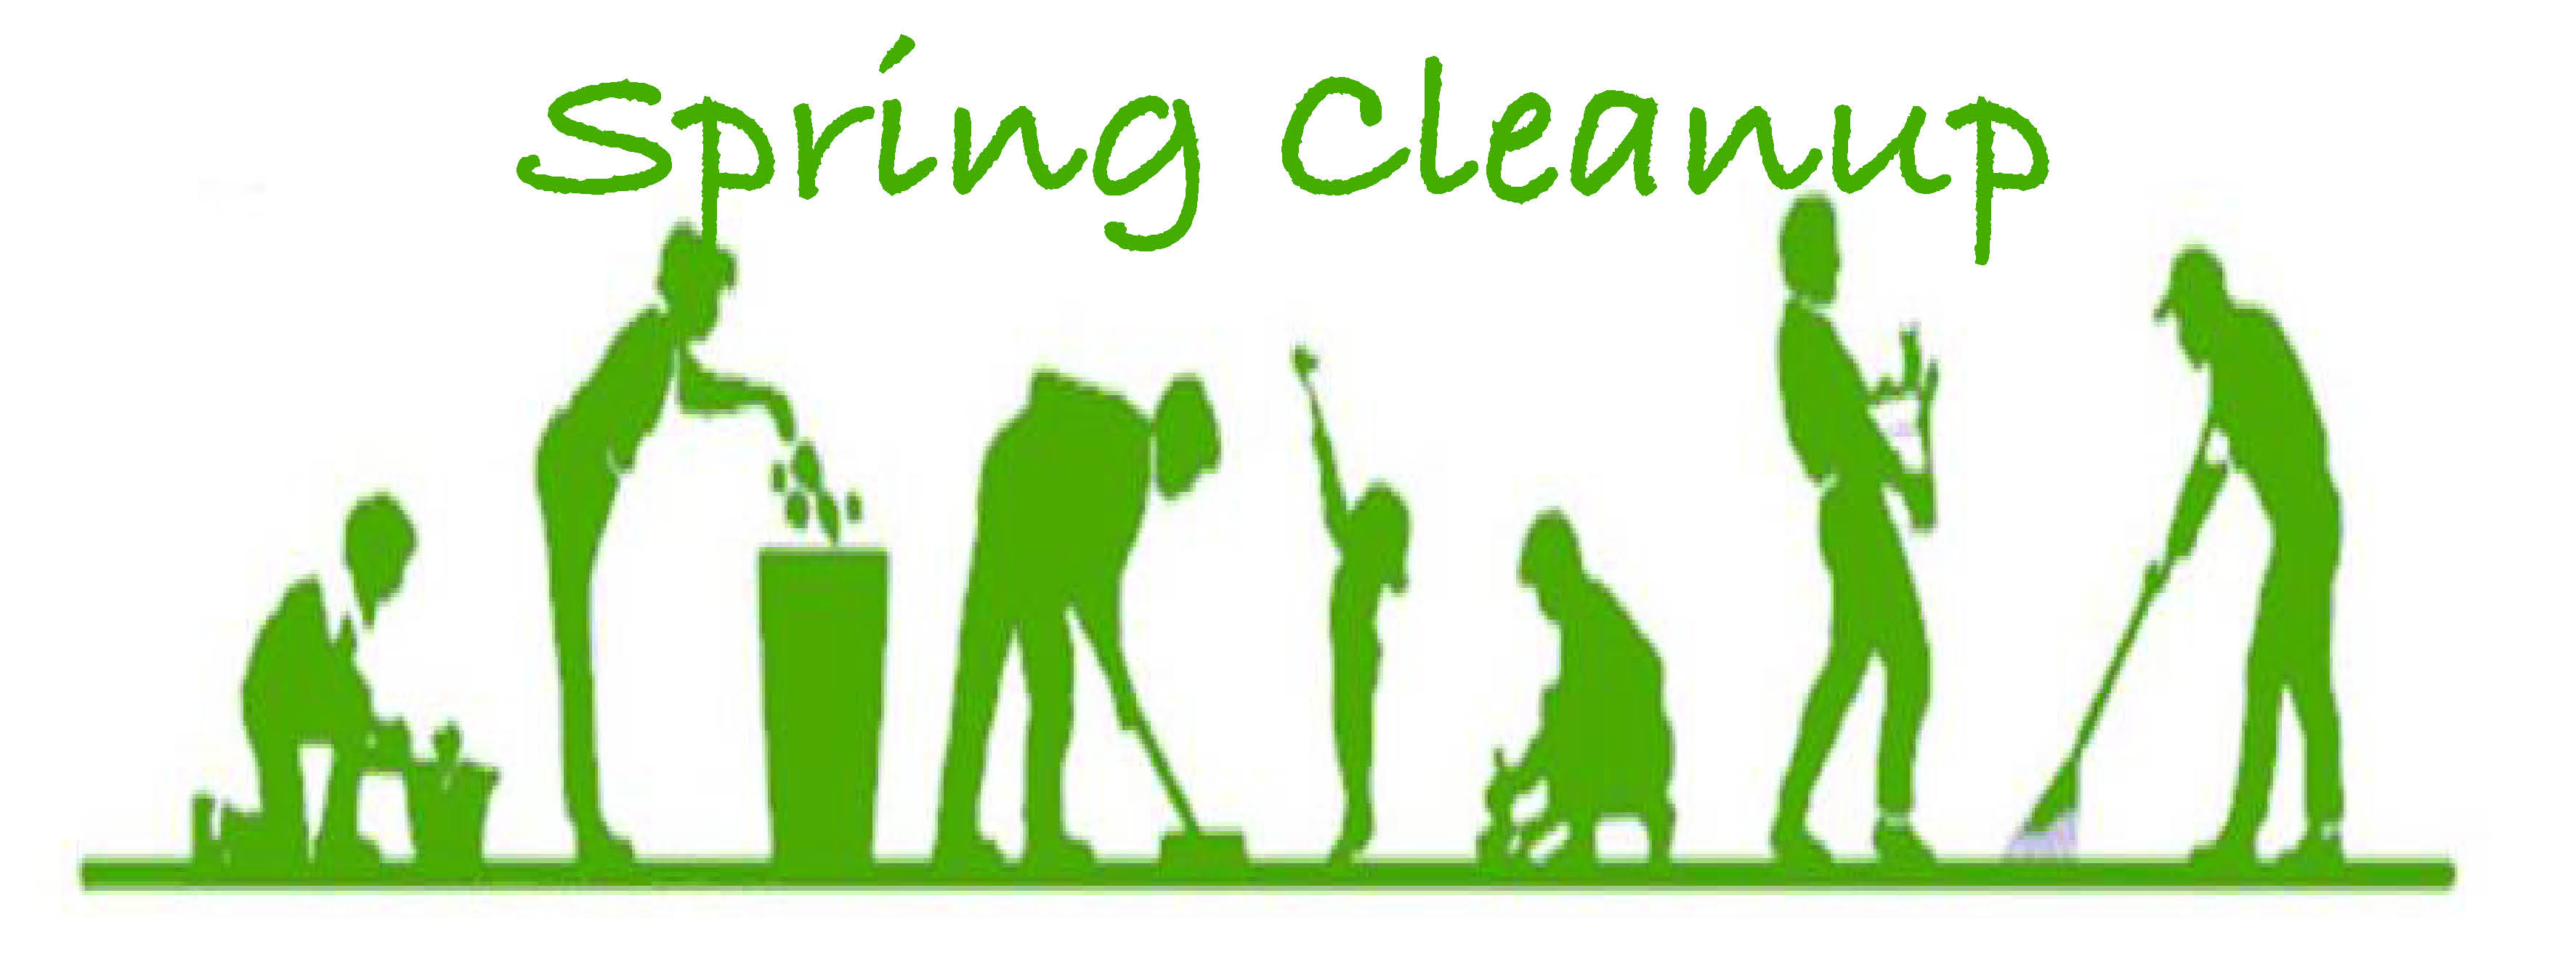 Spring clipart cleanup. Help wanted clean up